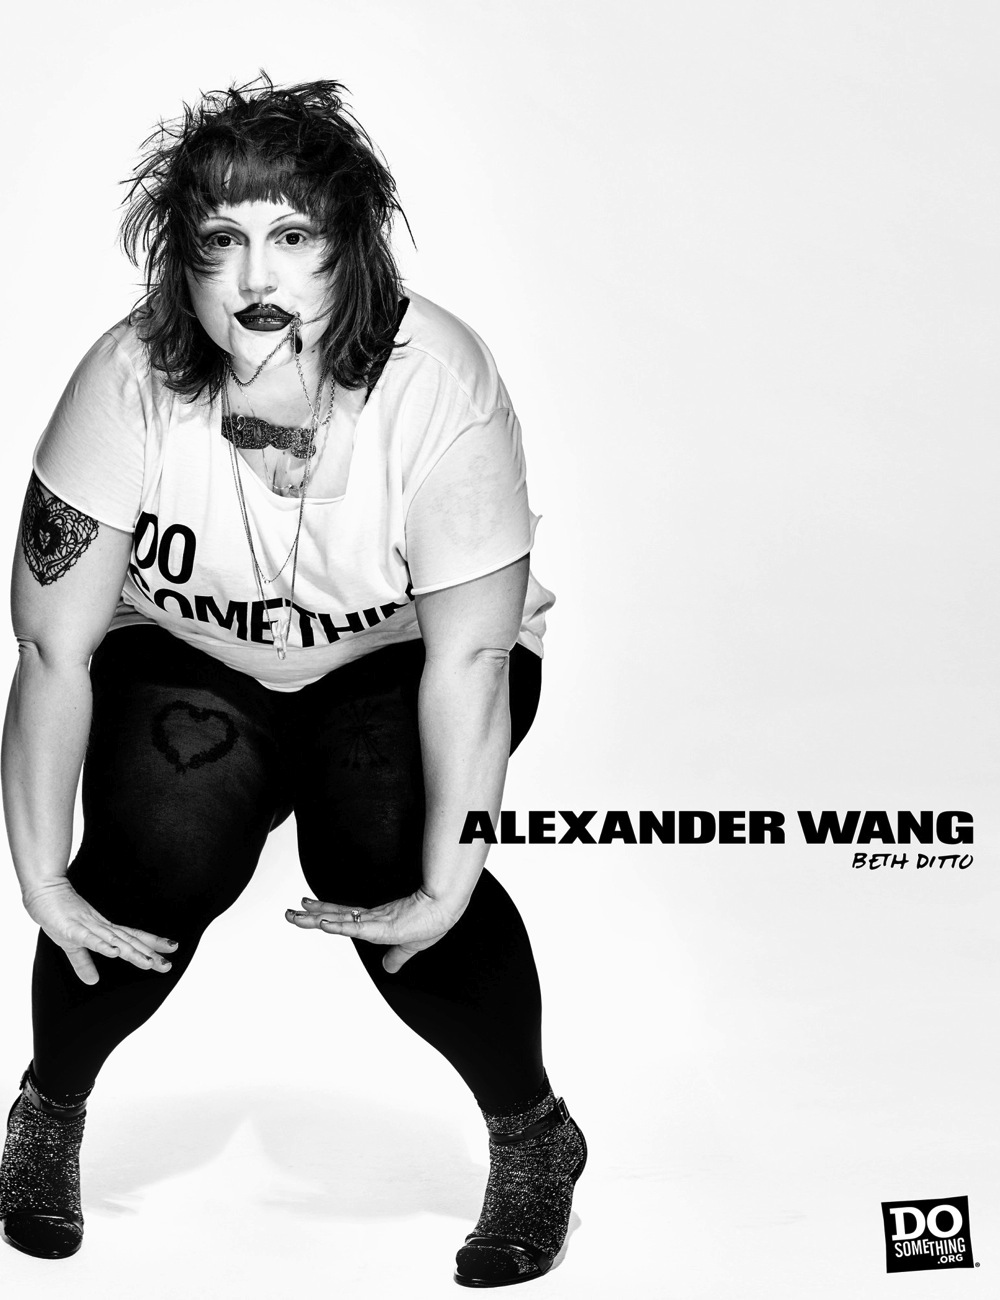 Beth Ditto wears Alexander Wang x DoSomething